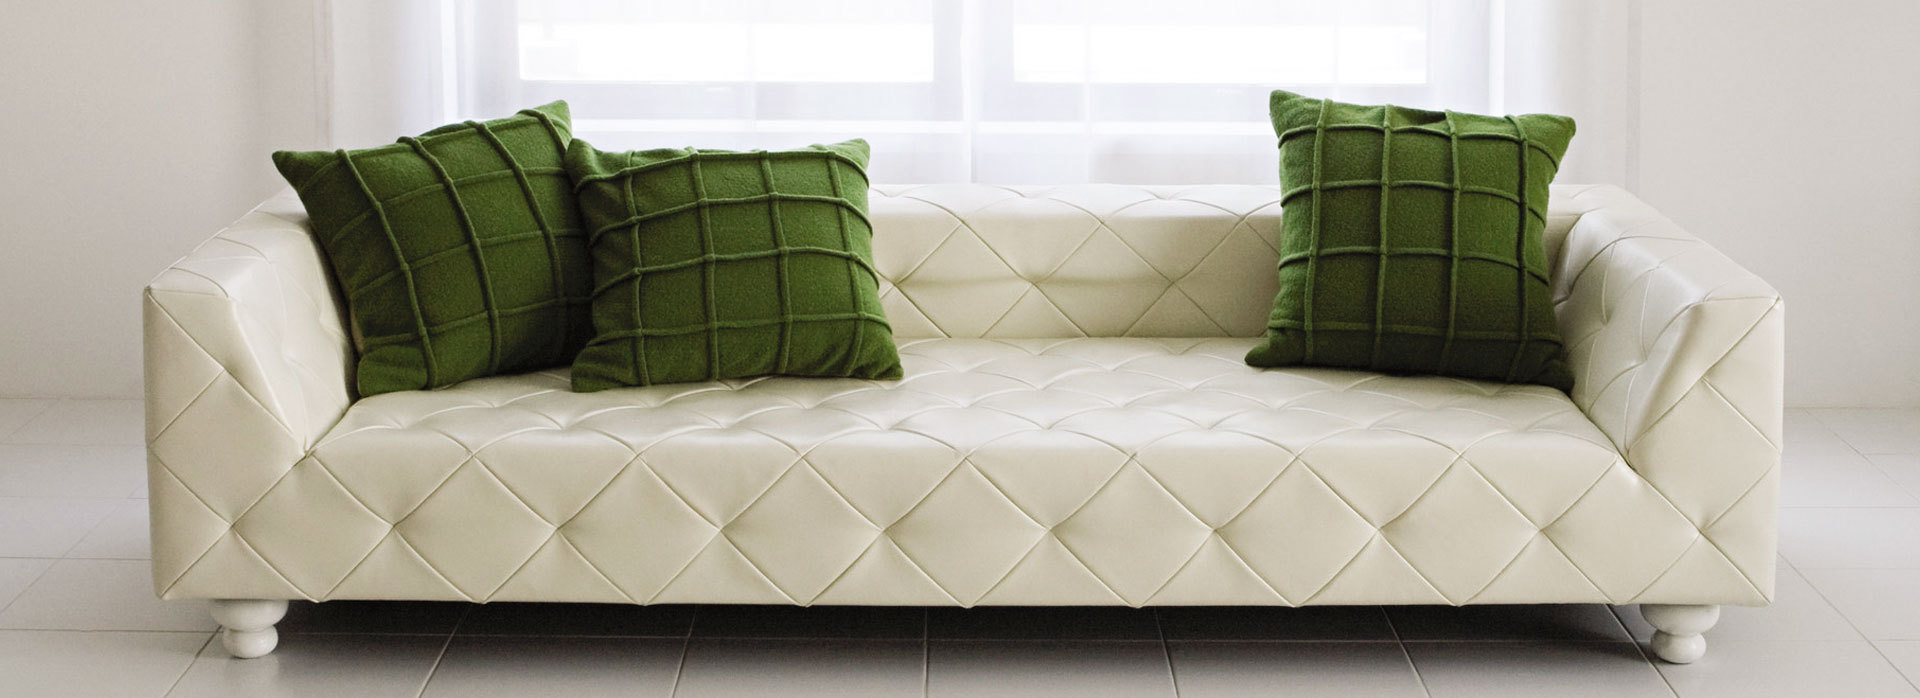 Swan Upholstery Is A Furniture Restoration Specialist In Romford